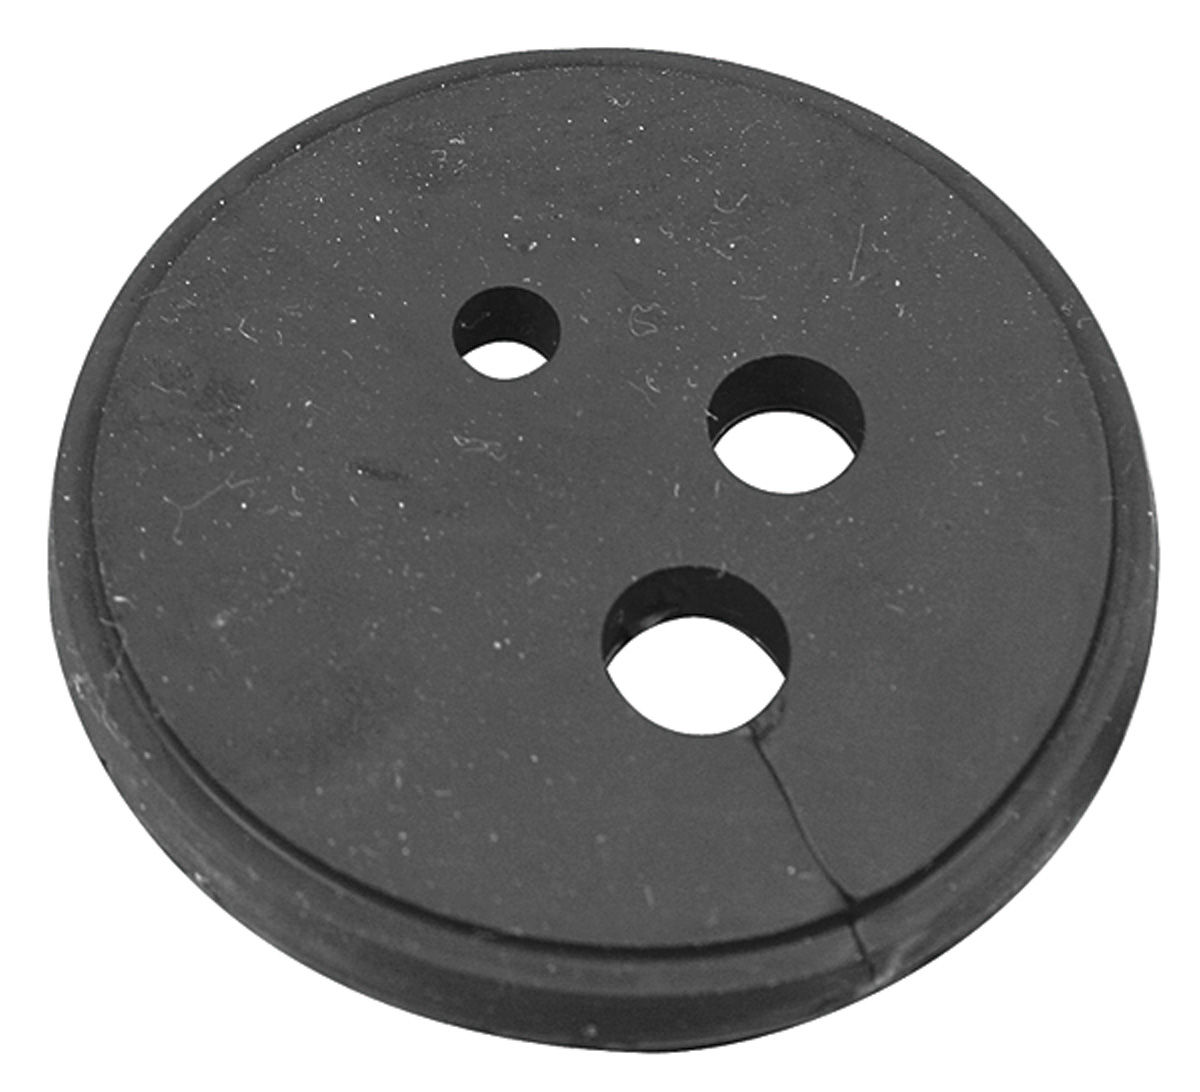 Rubber Grommet, Firewall, 1968-72 Buick/Chev/Pont/Olds w/ AC, 2-1/4